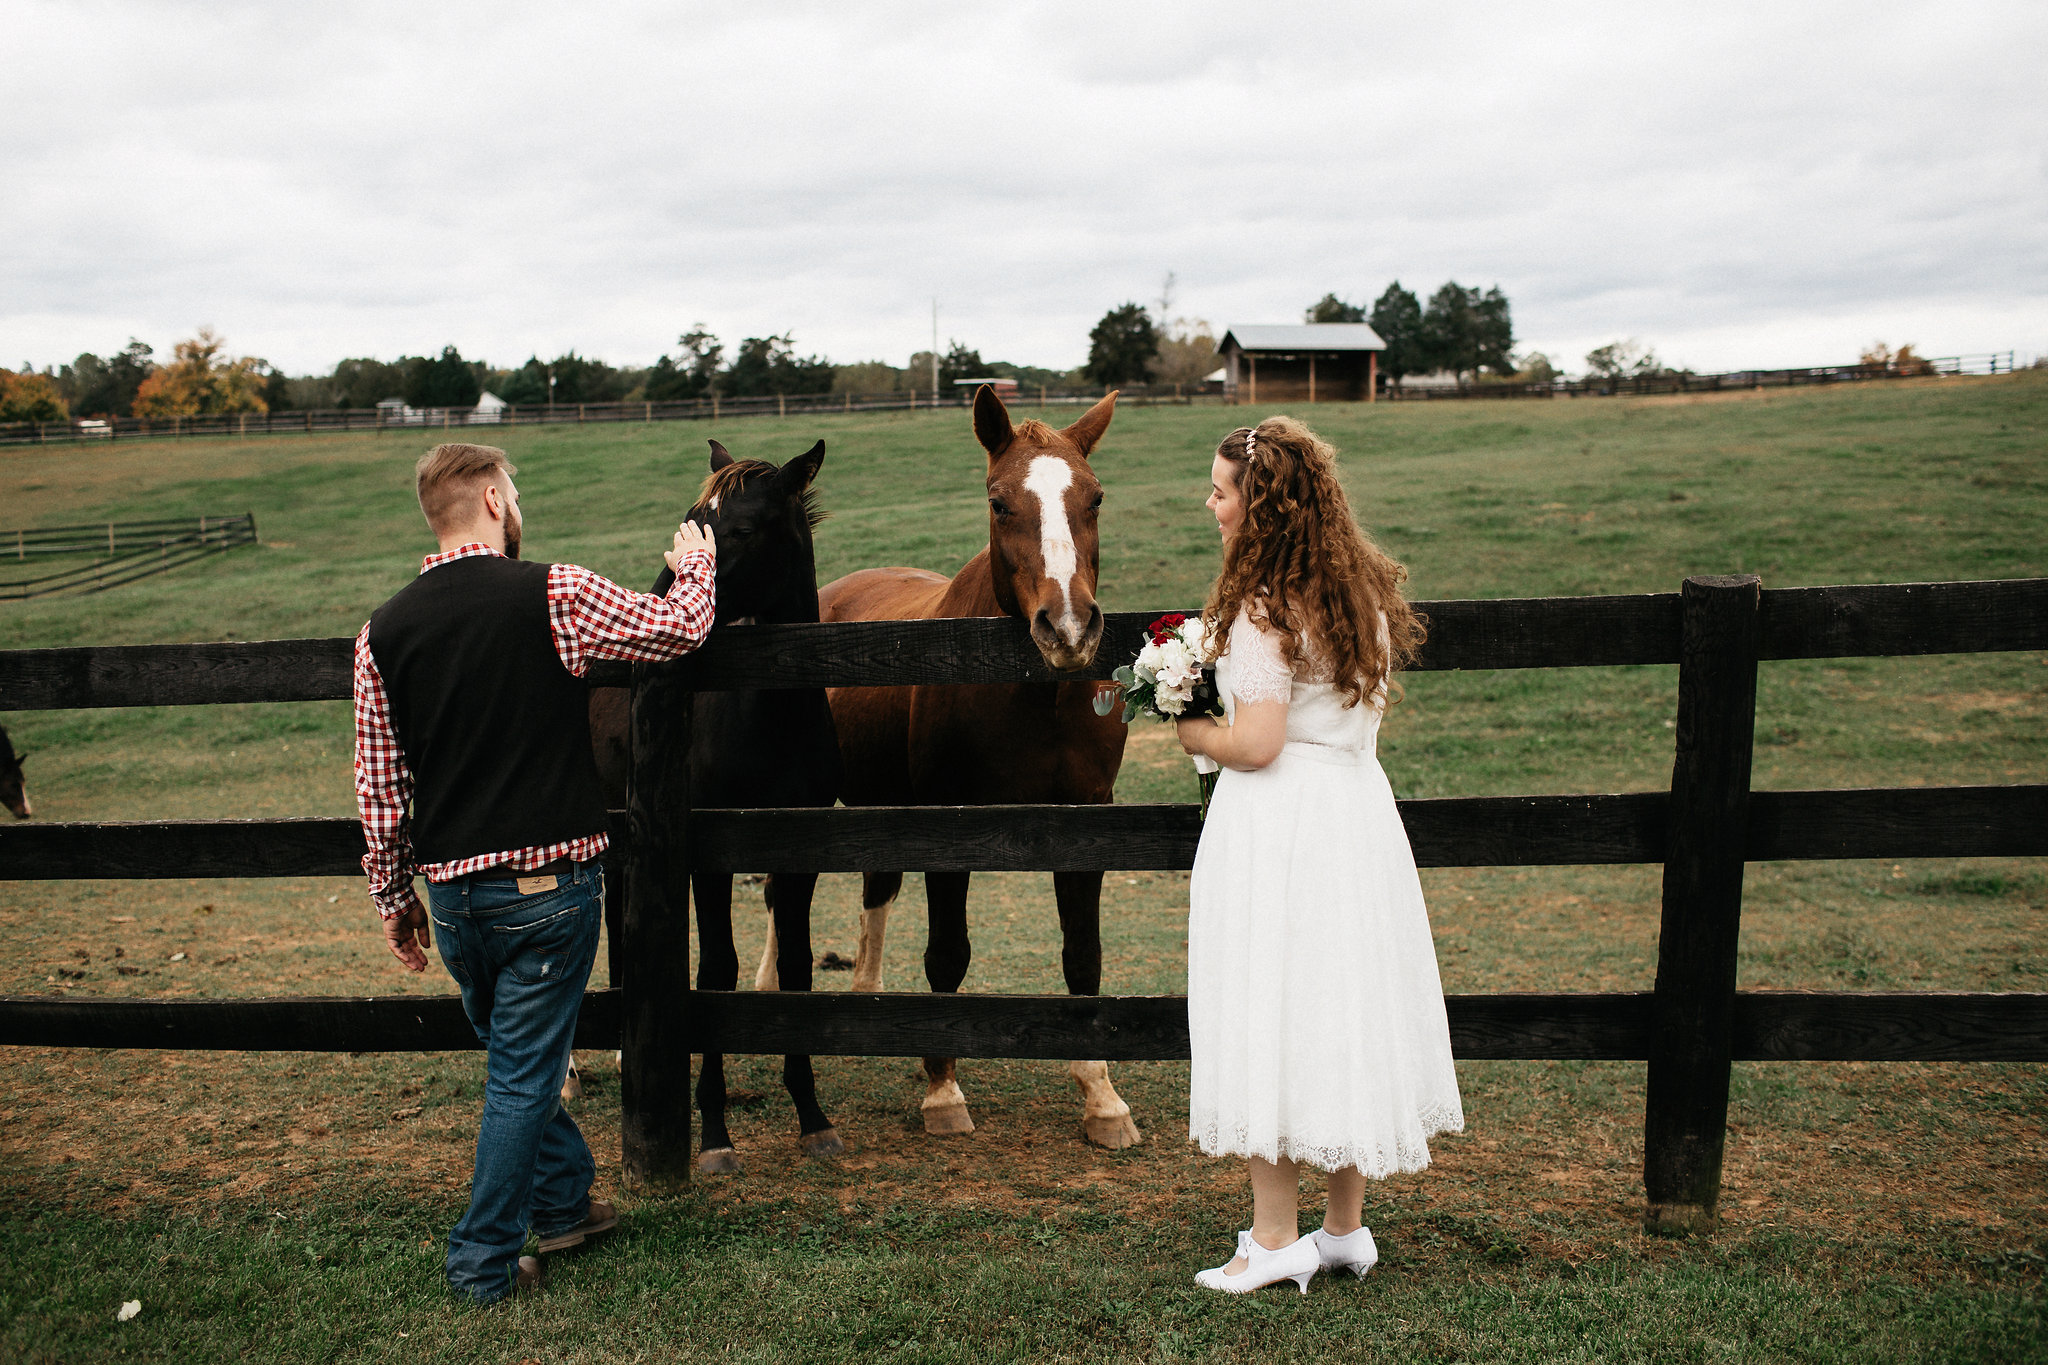 Caitlin&CodyMarried2017-11-03at19.19.39PM196.jpg